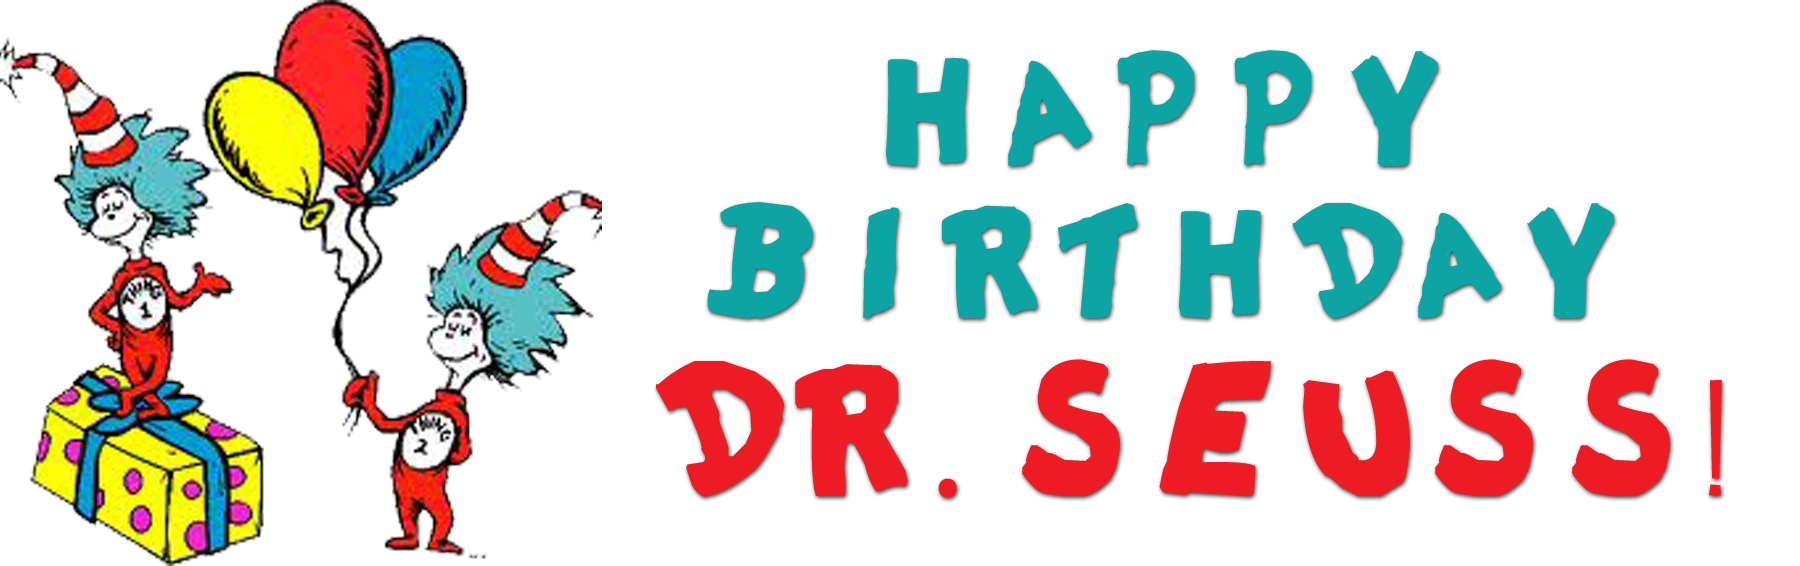 dr seuss birthday cake clip art ; Happy-Birthday-Seuss